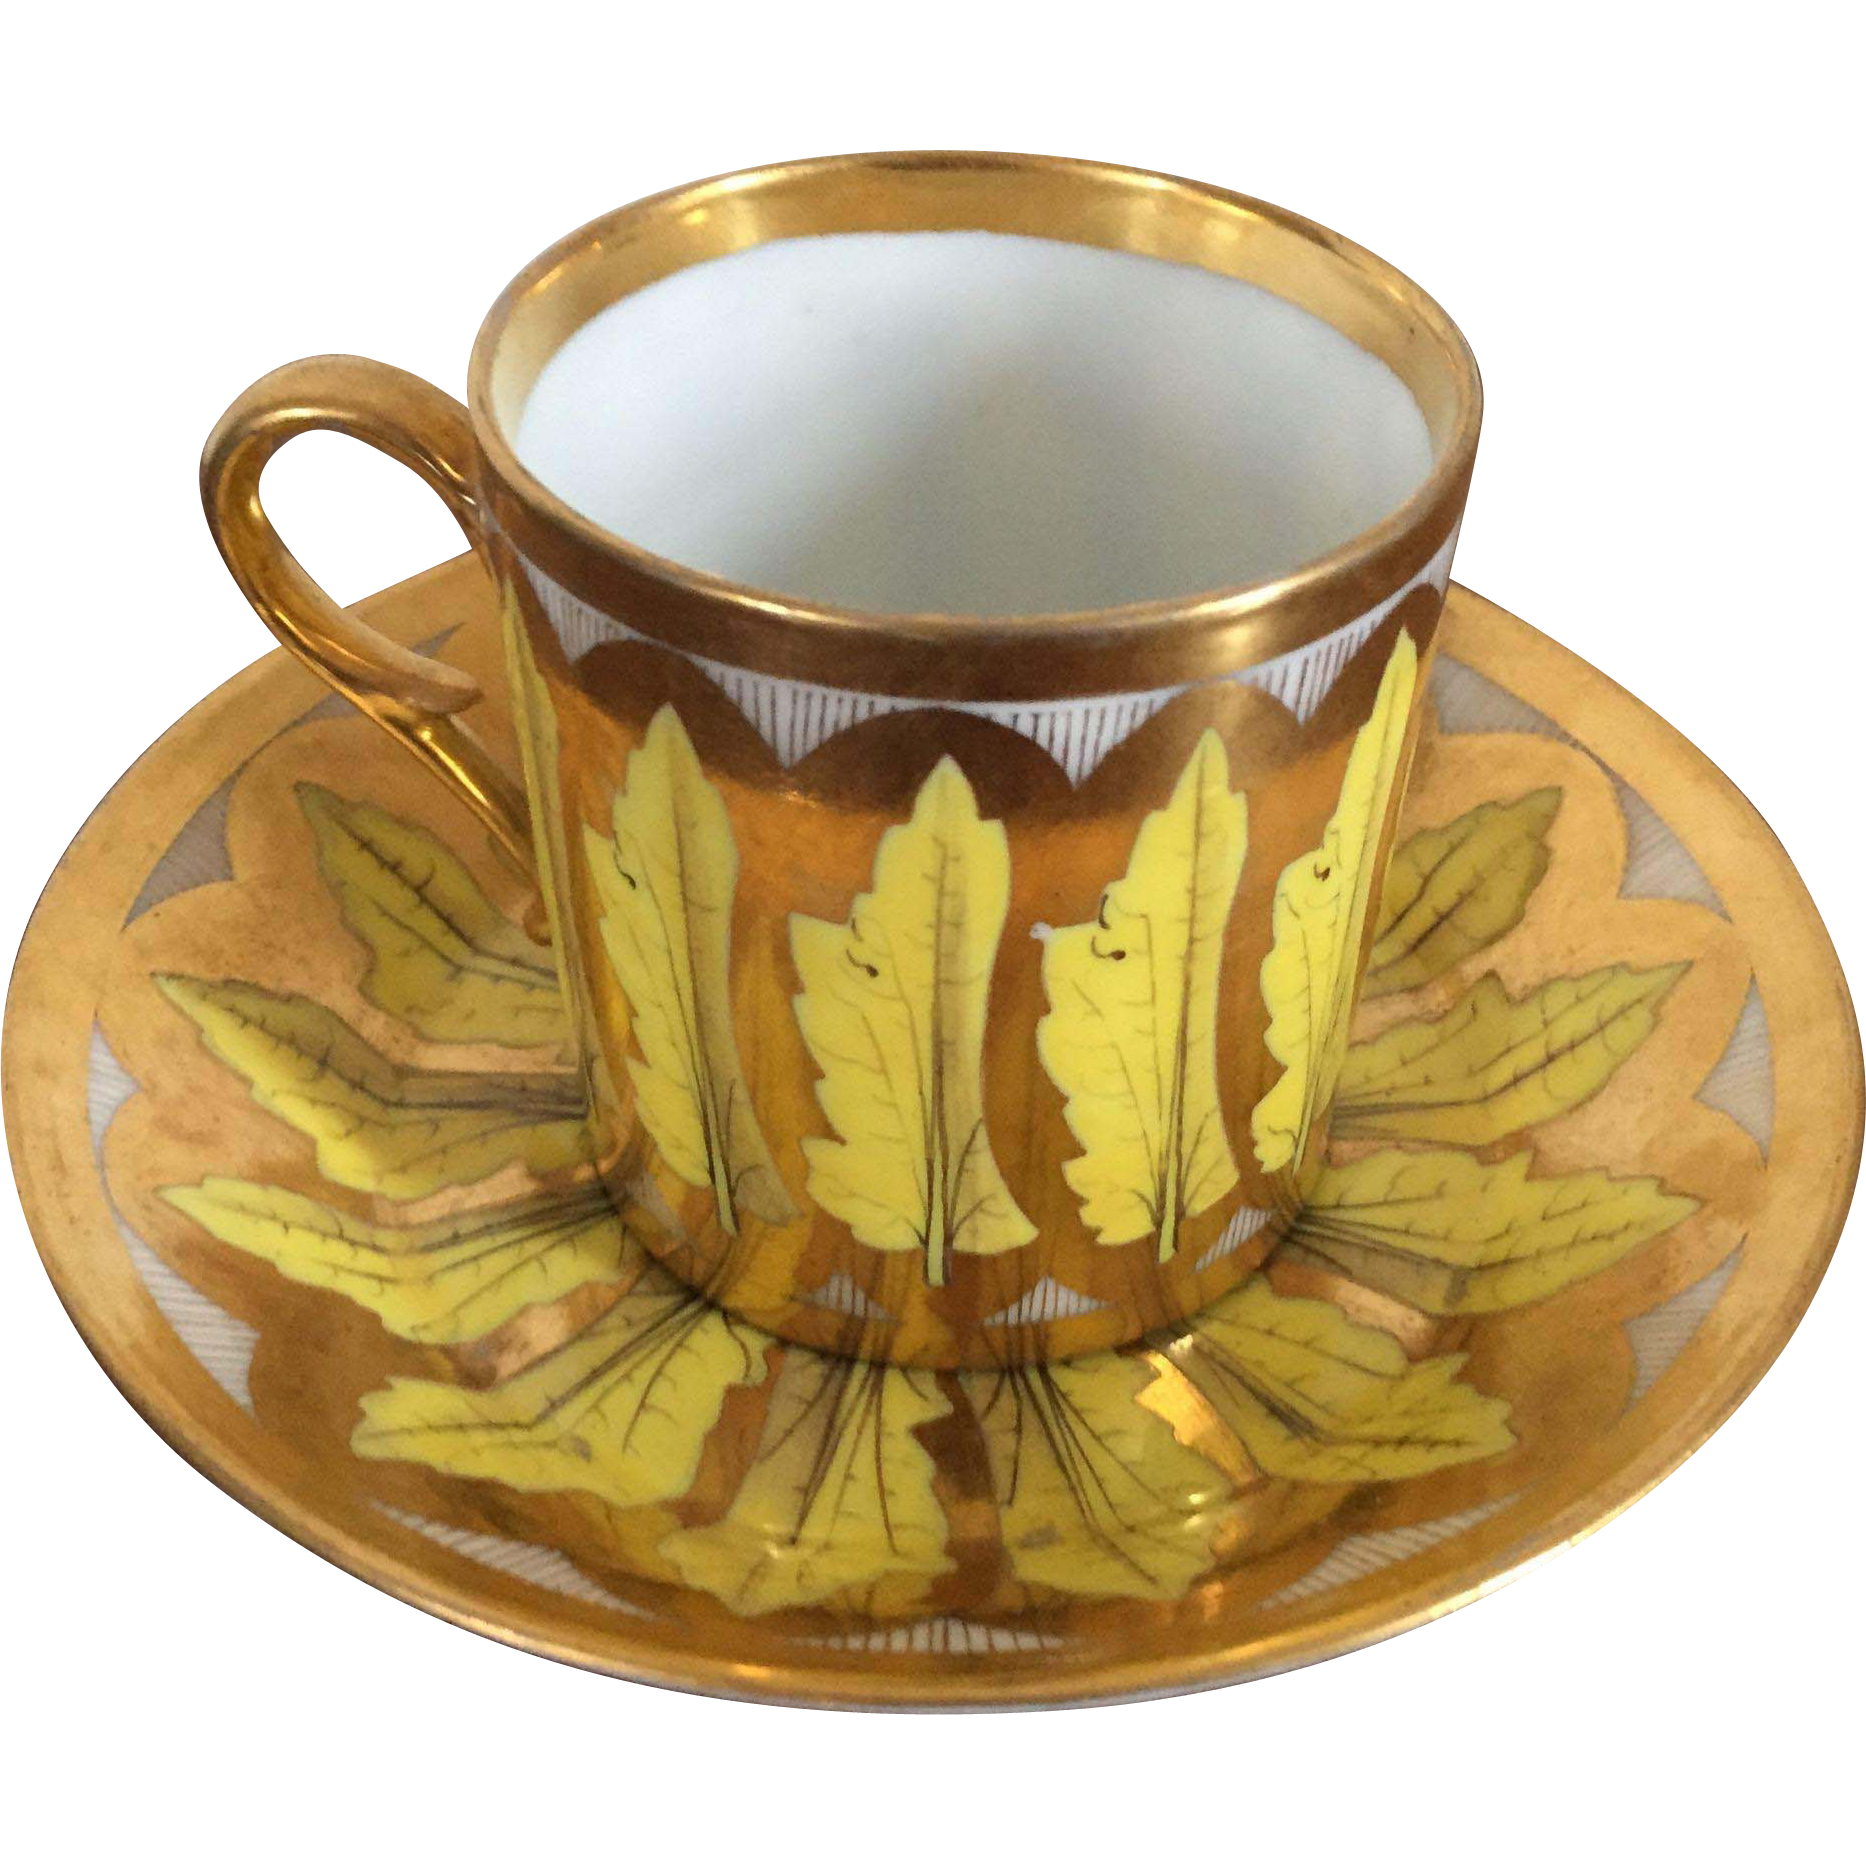 French Empire Vieux Paris Porcelain Cup Saucer Dartes: Antique Early 19th Century French Empire Old Paris